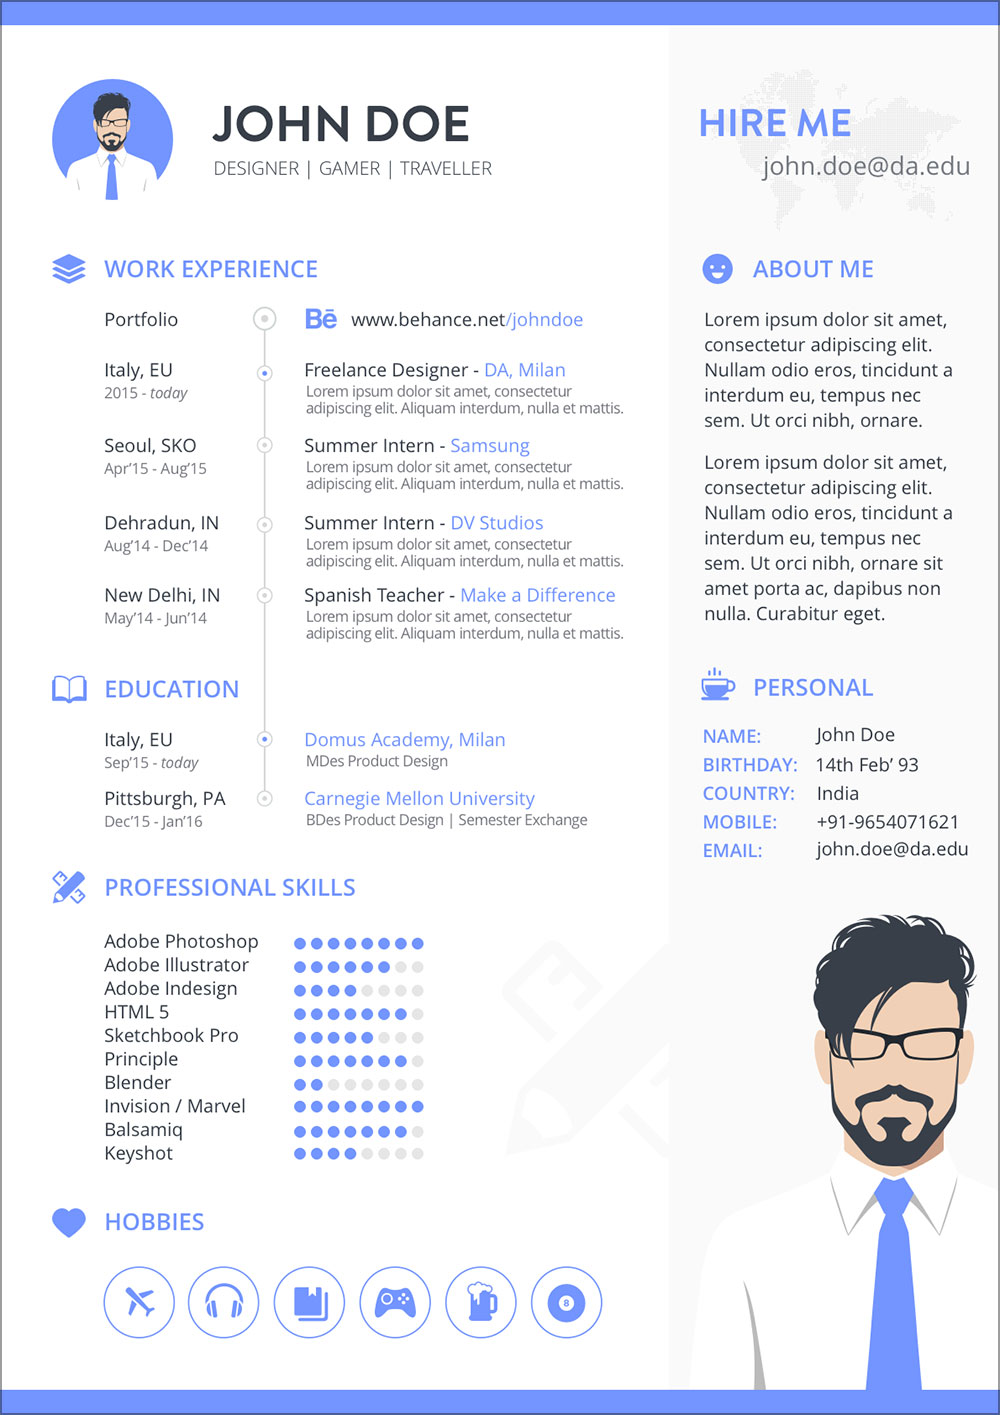 Free-Resume-Template-in-Sketch-for-Gamer-&-Designer-2